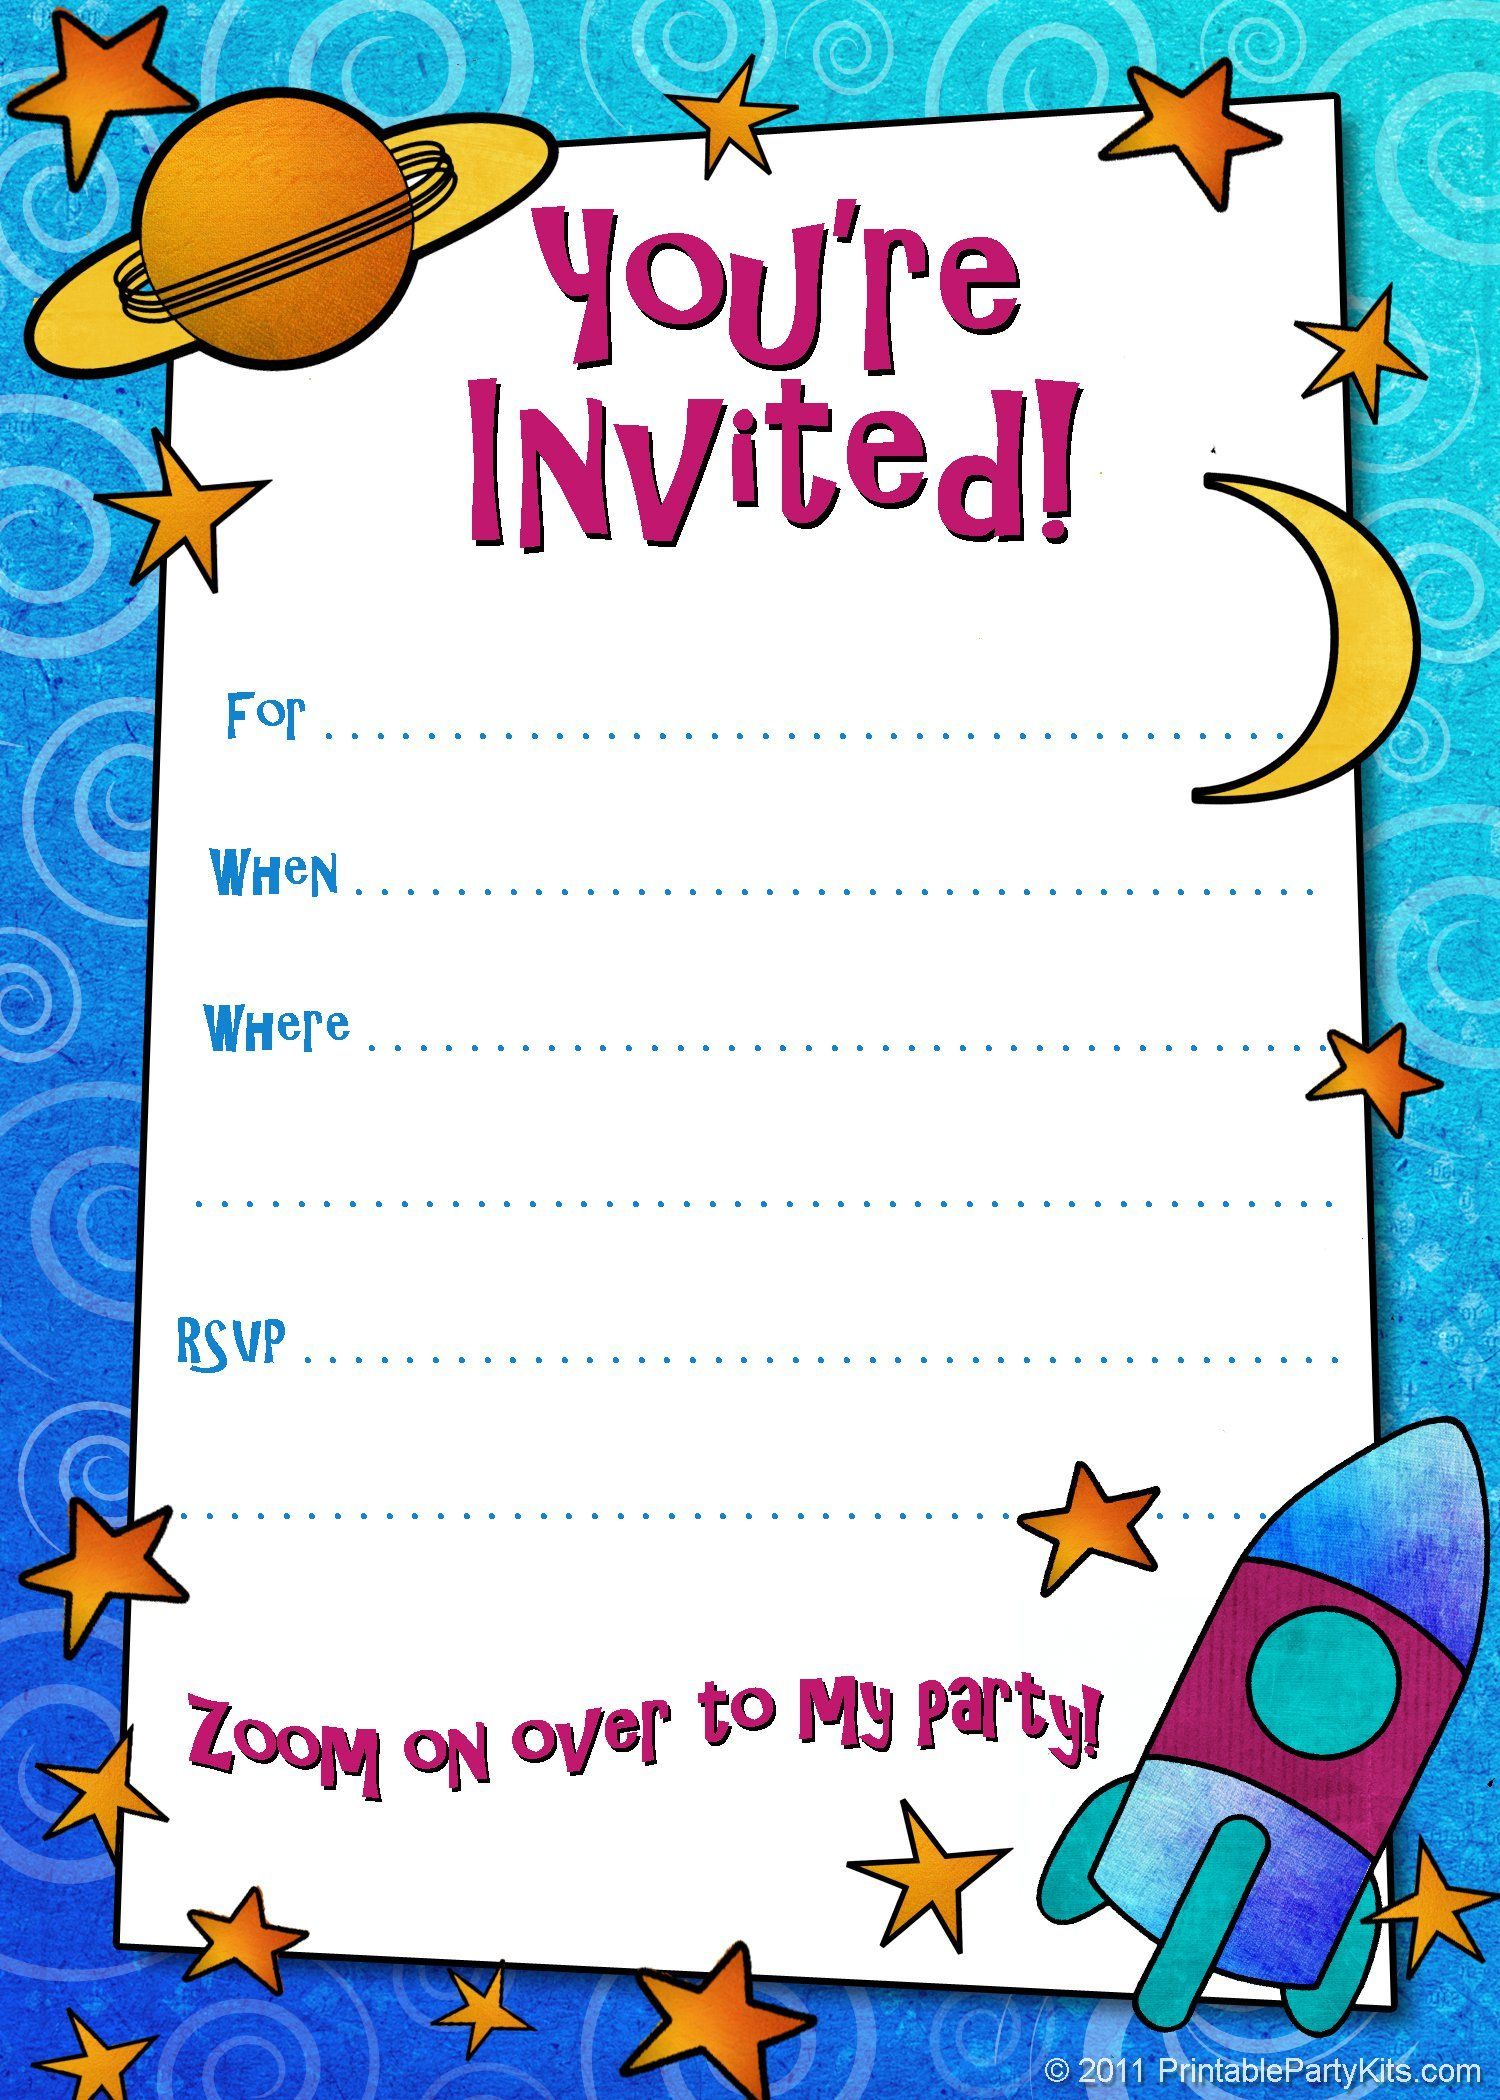 print-invitation-cards-online-free | baptism invitations ...